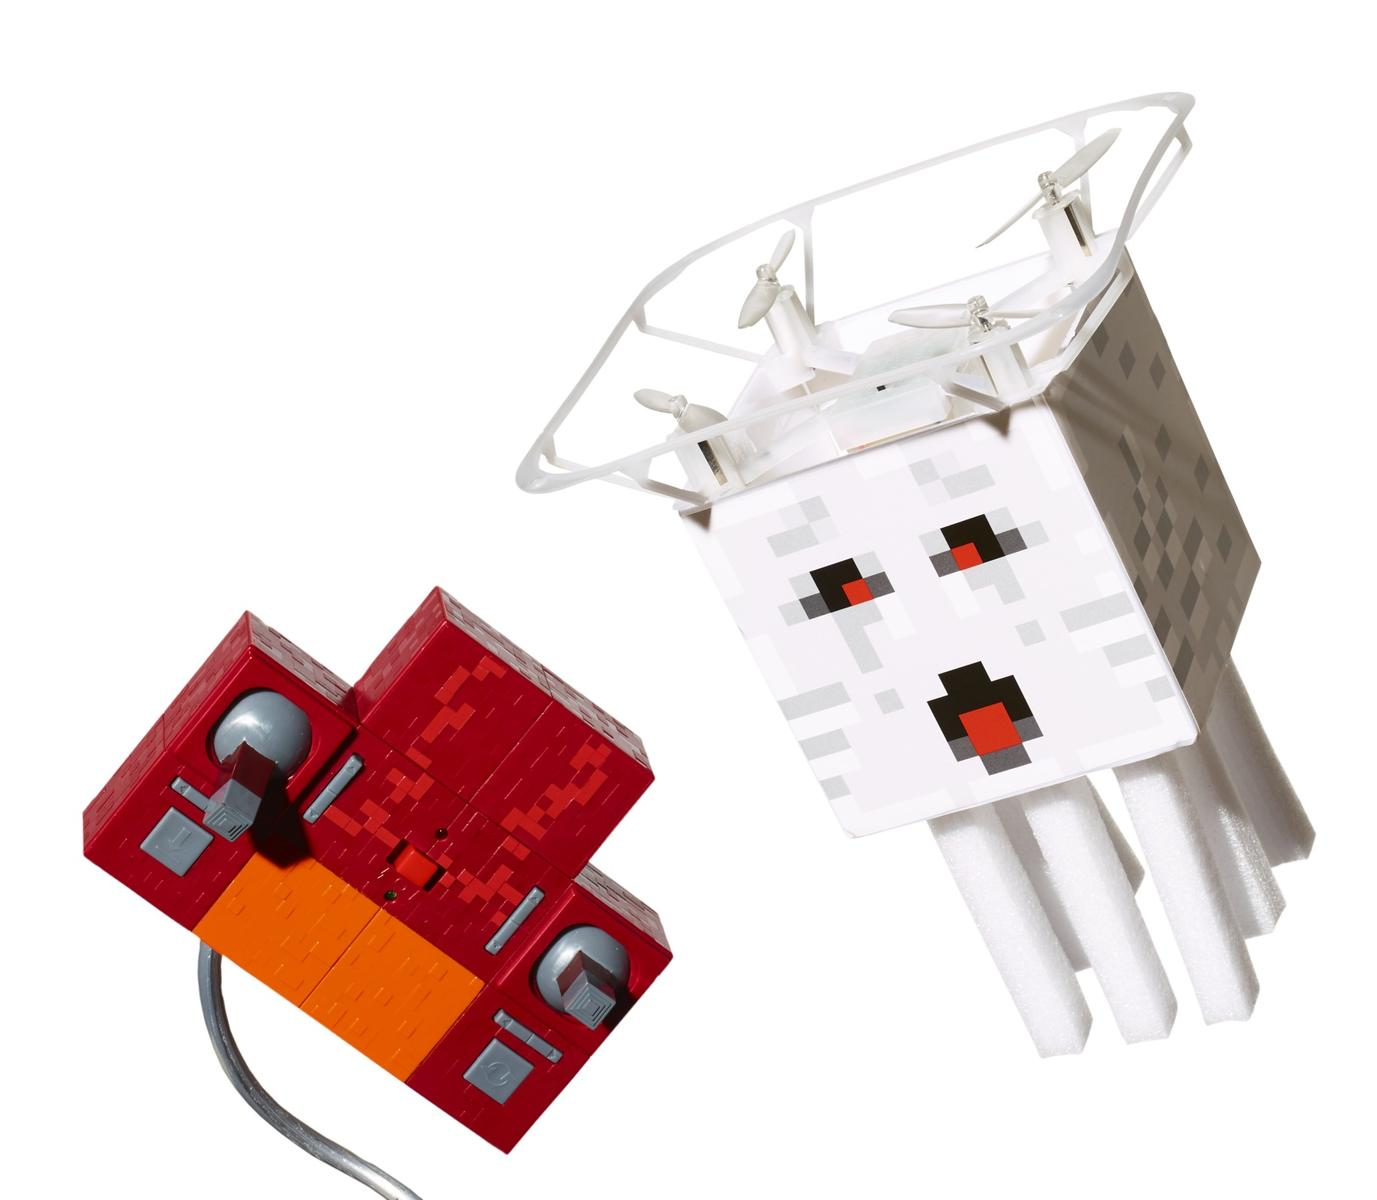 2016 Toys of the Year Mattel Minecraft RC Ghast